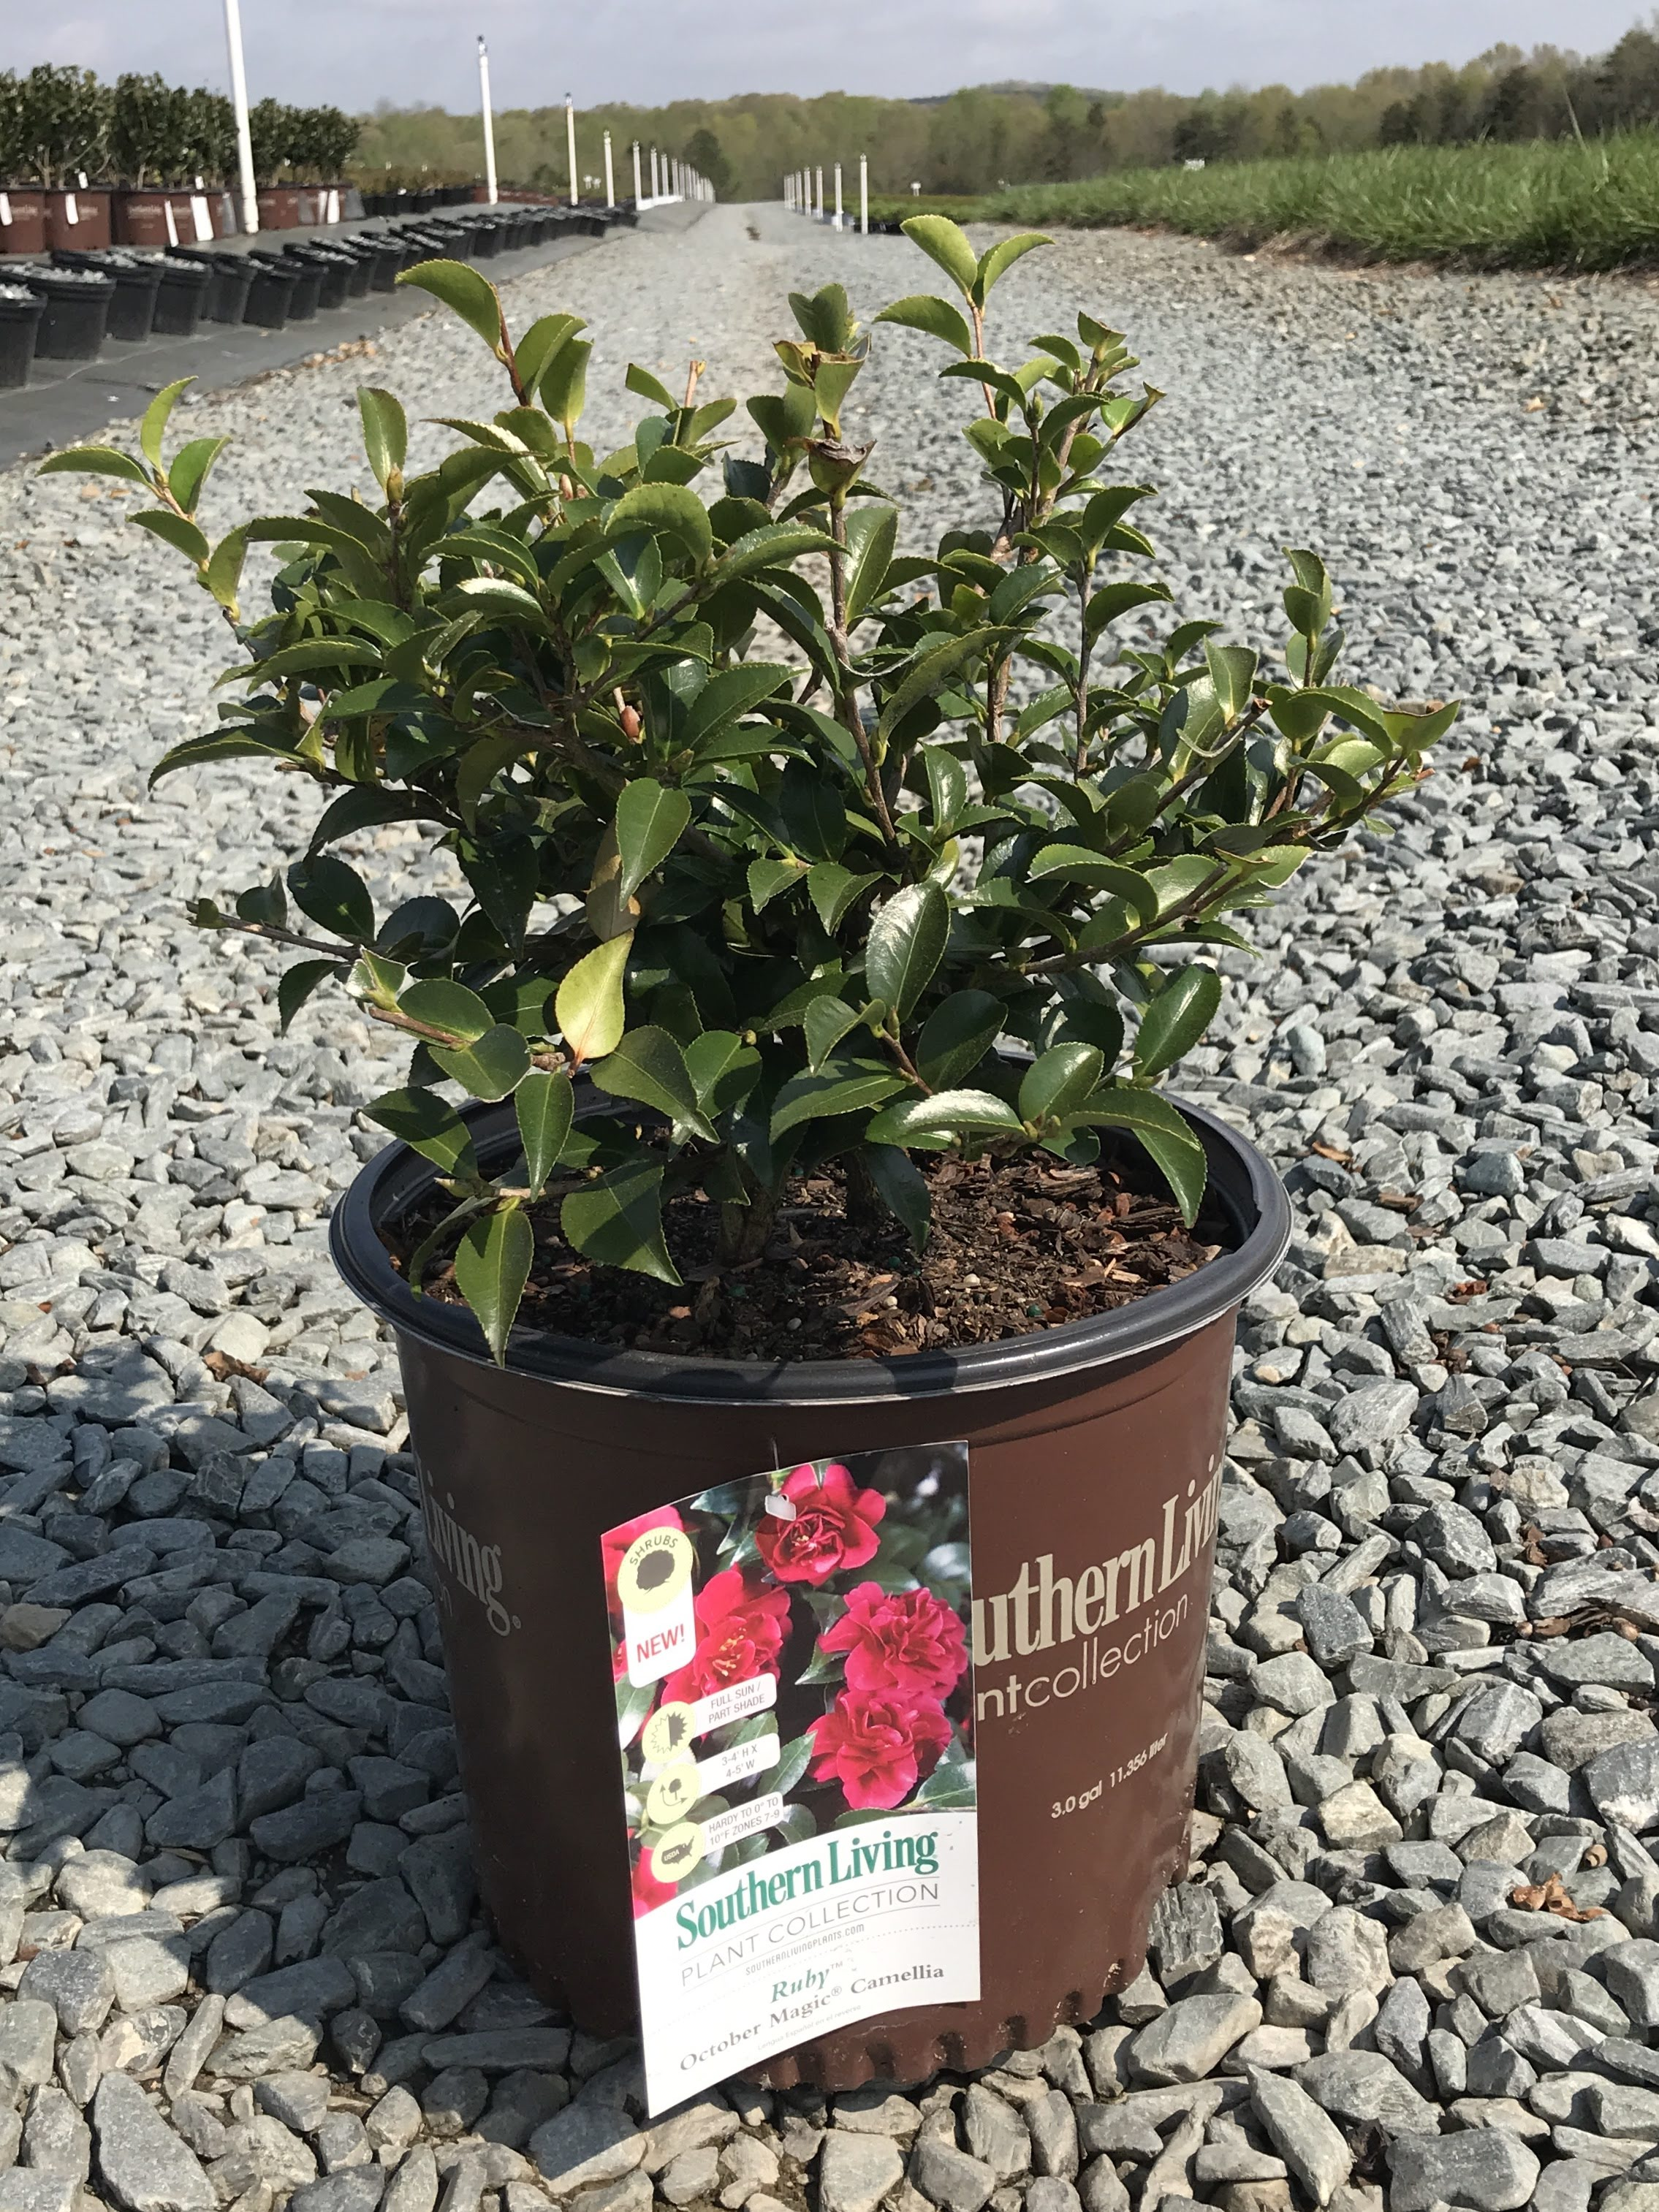 October Magic(R) Ruby(TM) Camellia 3 gallon